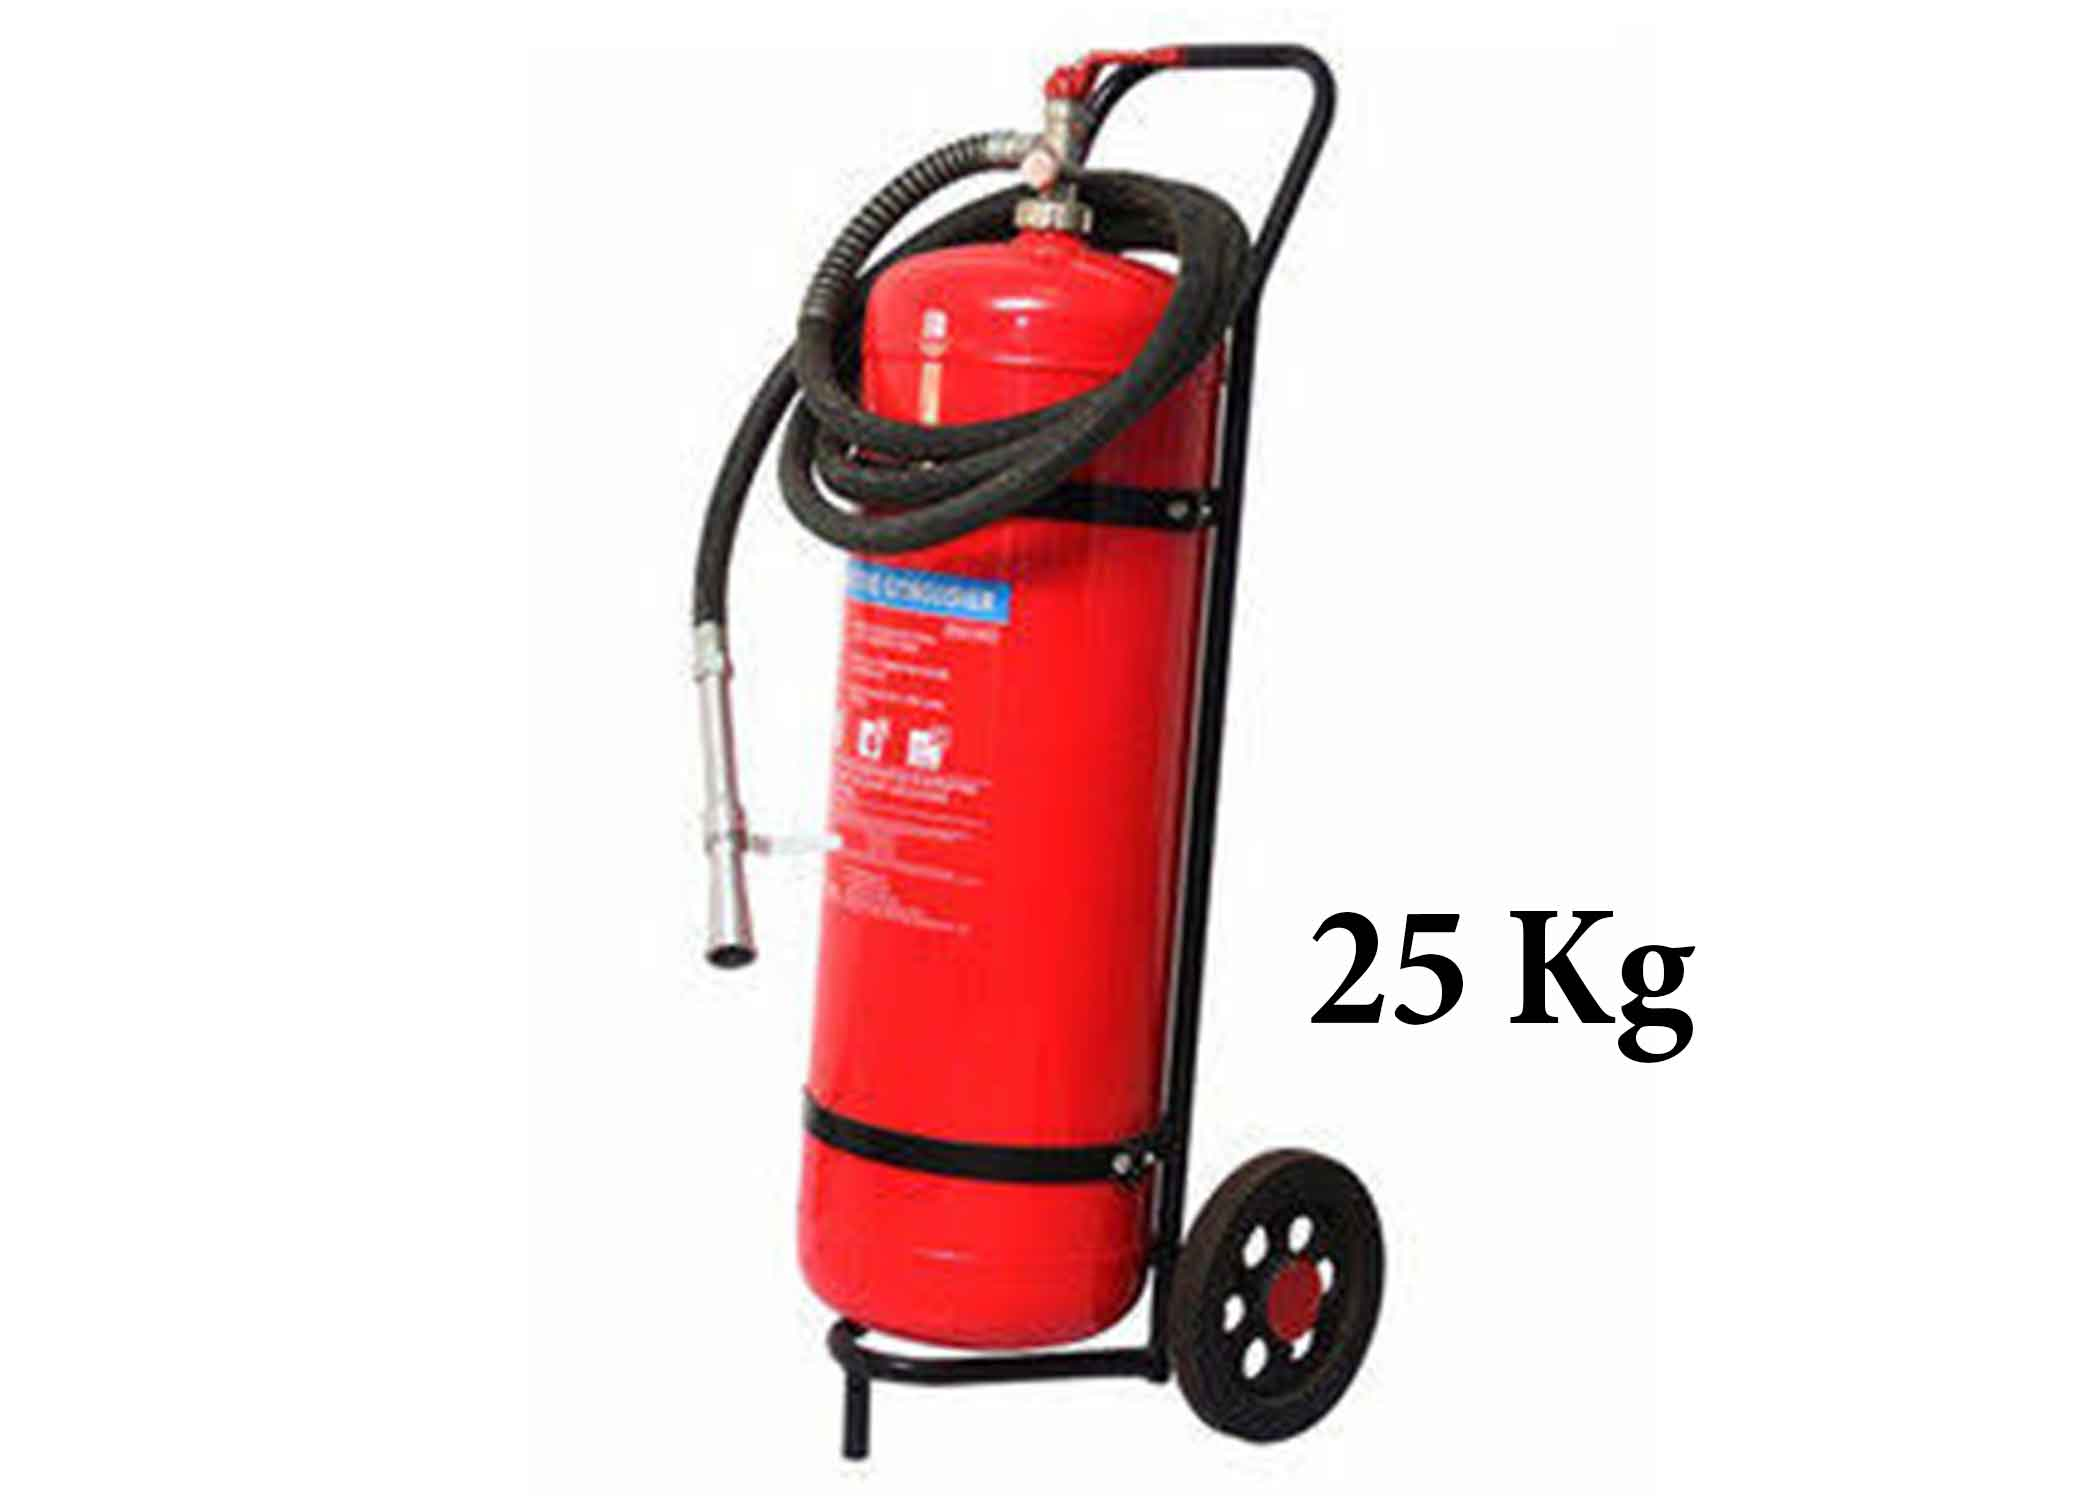 25 KG ABC Dry Powder Fire Extinguisher